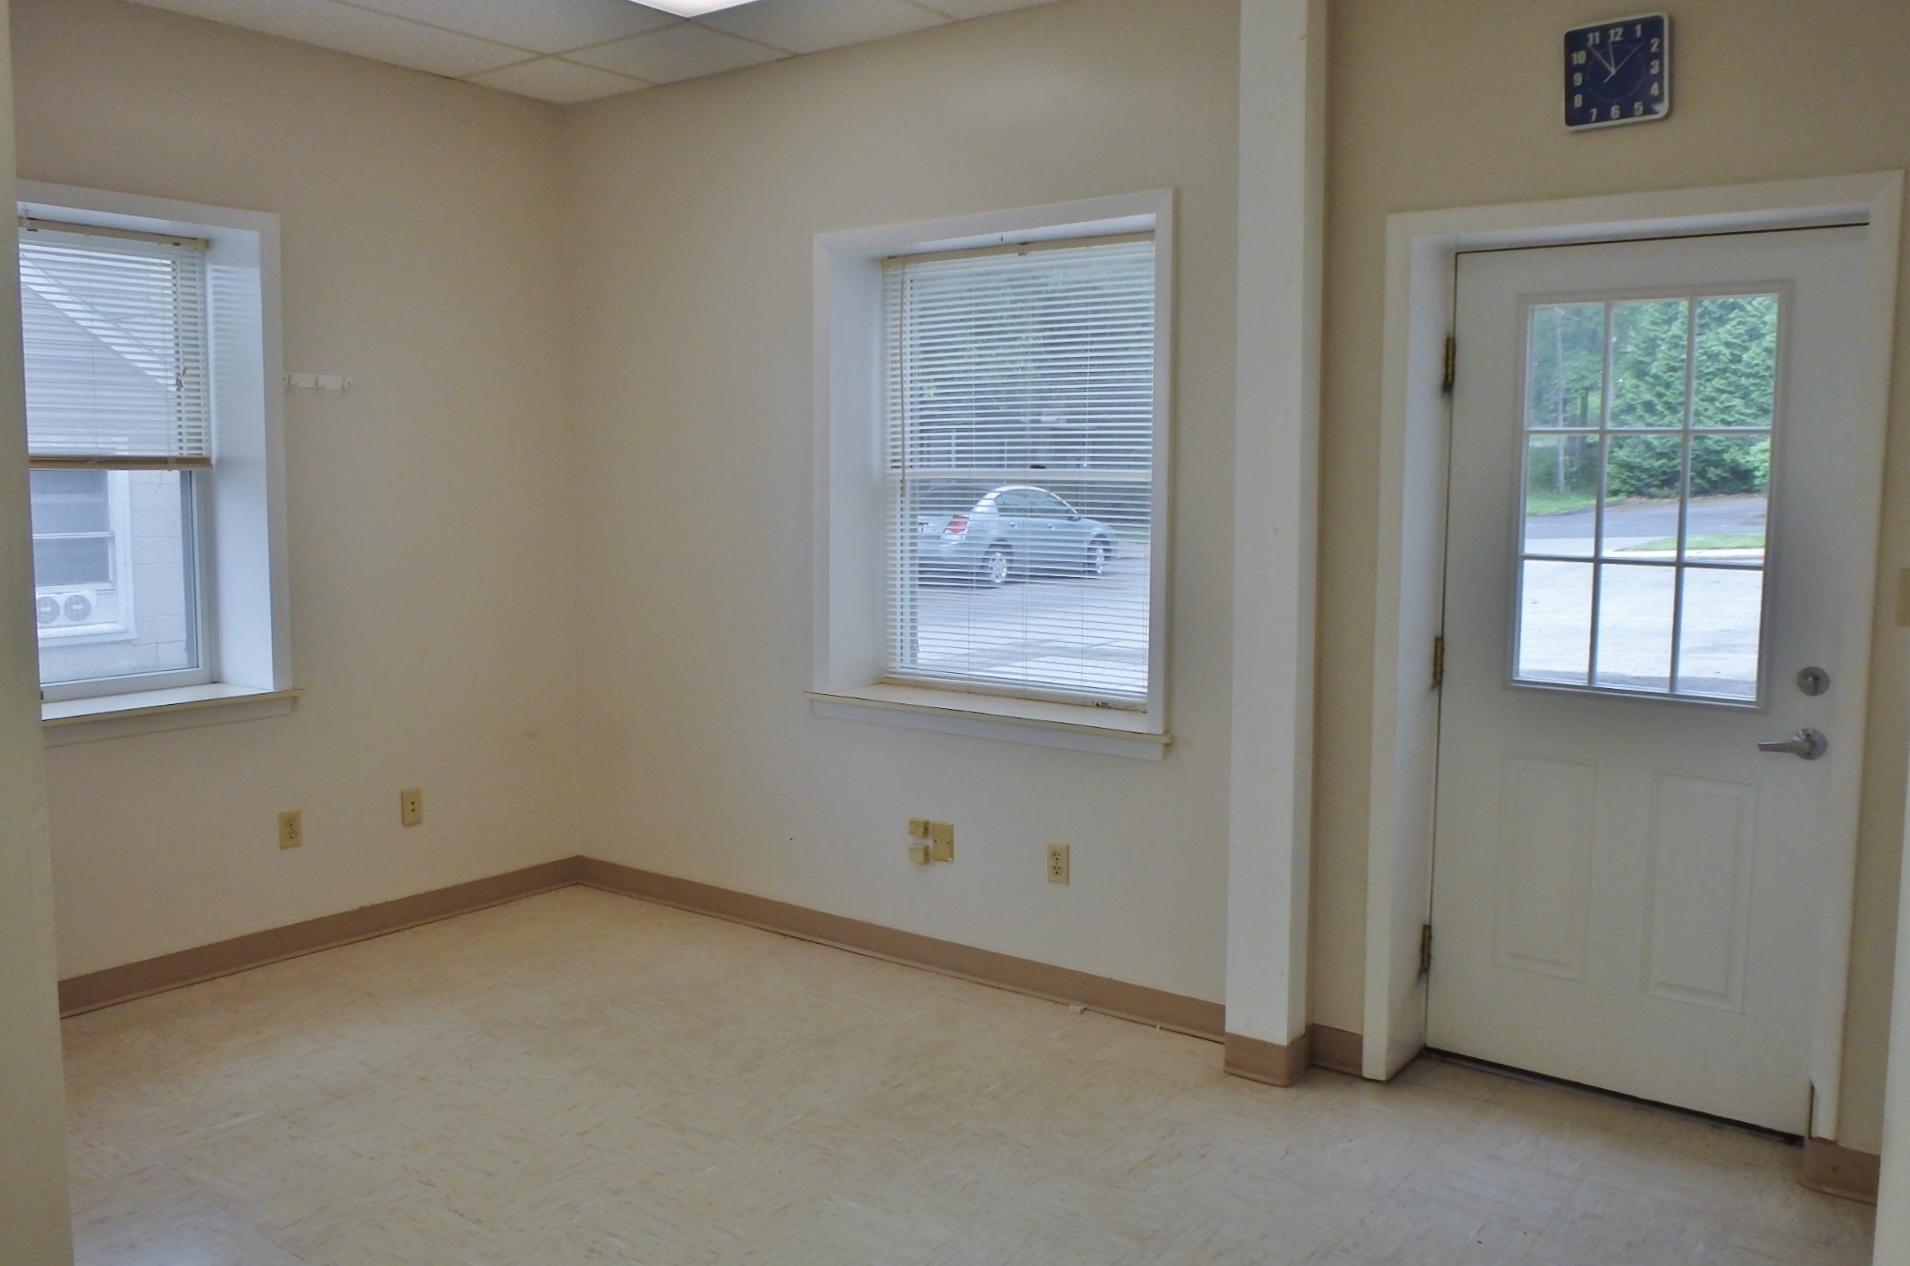 Front Room Photo: 1792 N. Atherton Street Commercial Space in State College PA